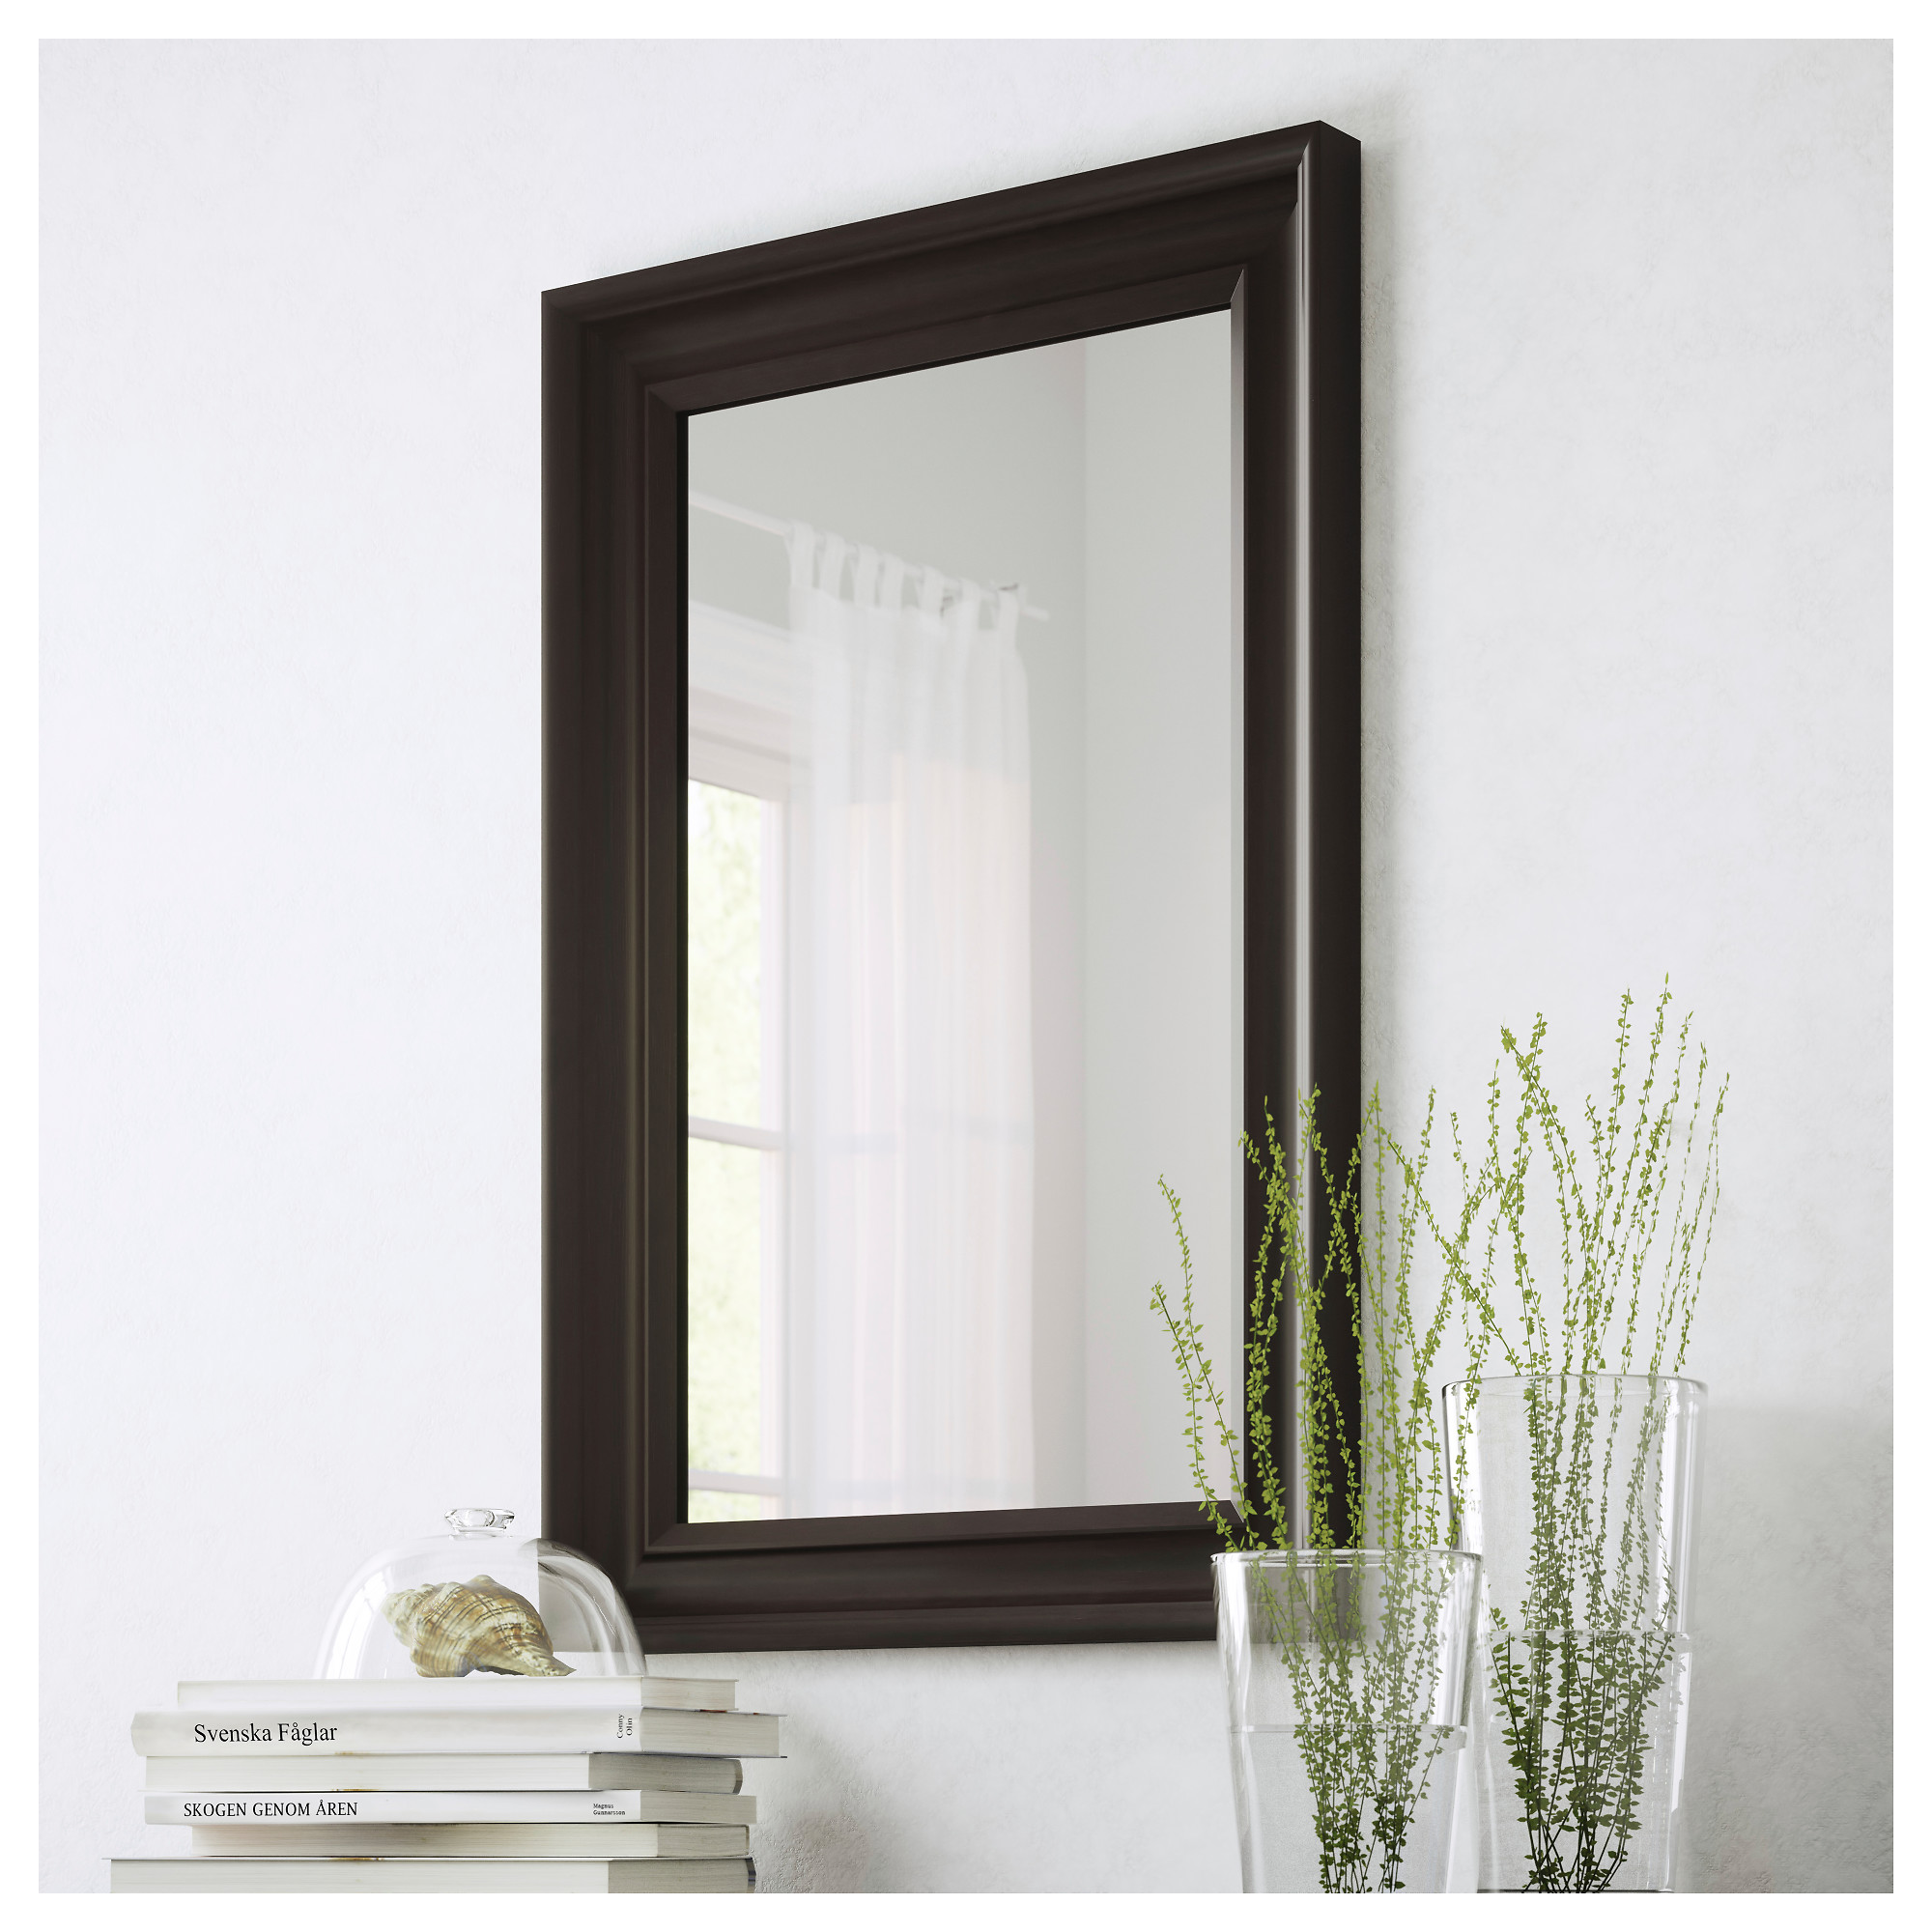 Cute floor length mirrors ornate ornament mirror frame can be place at your beautiful bedroom Ideas